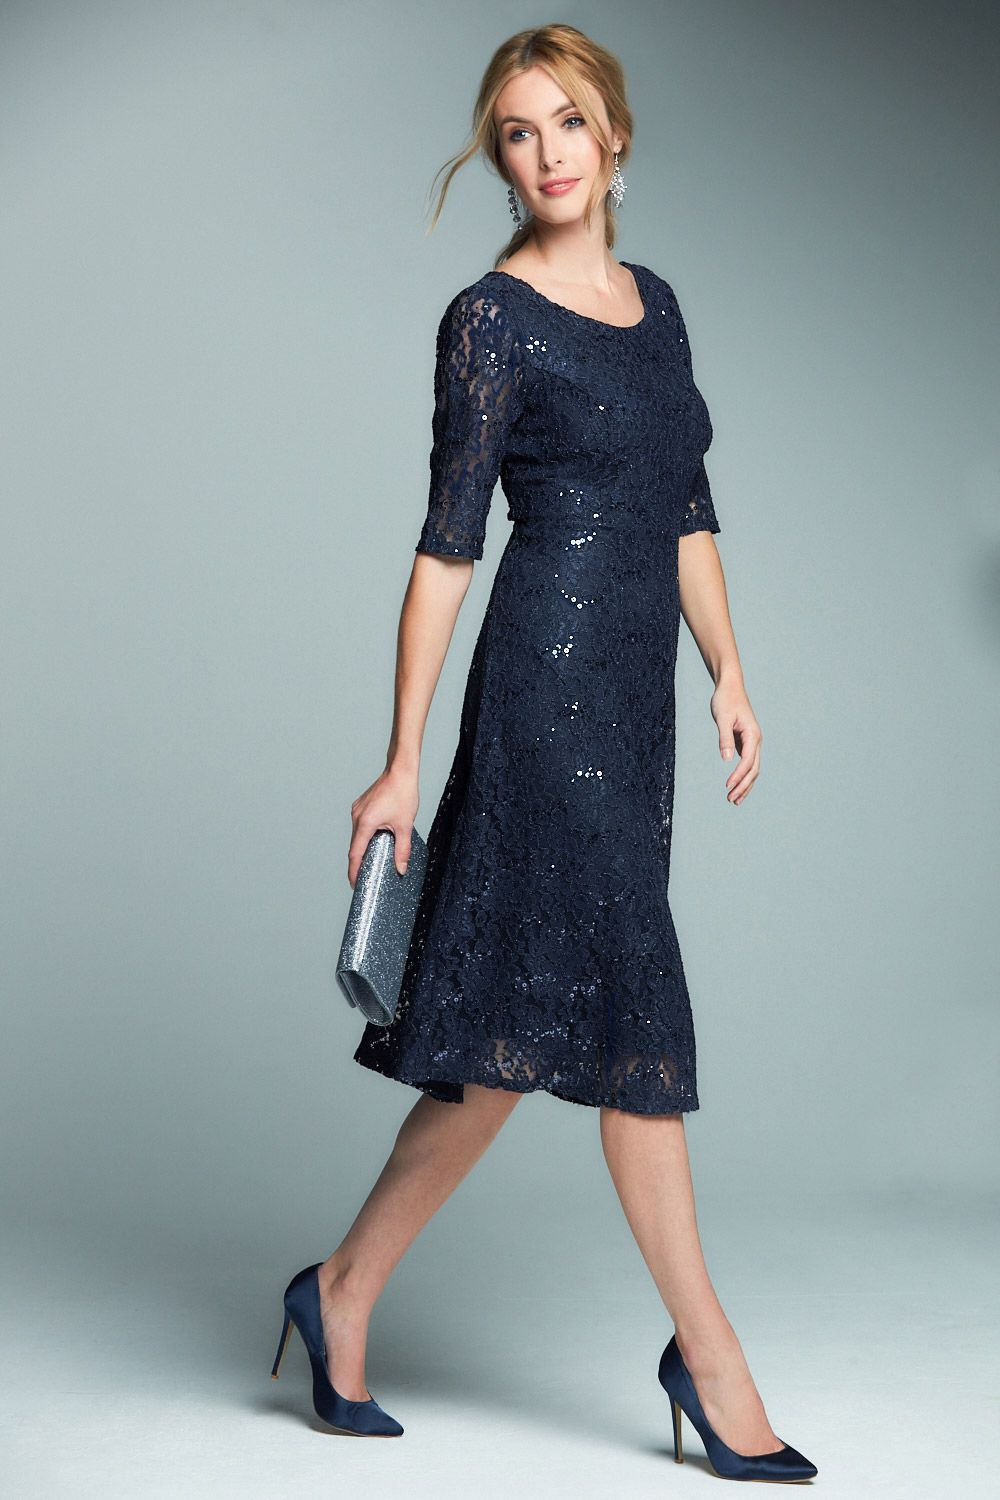 Short Sleeve Sequin Lace Dress | Women\'s Fashion | Pinterest | Lace ...